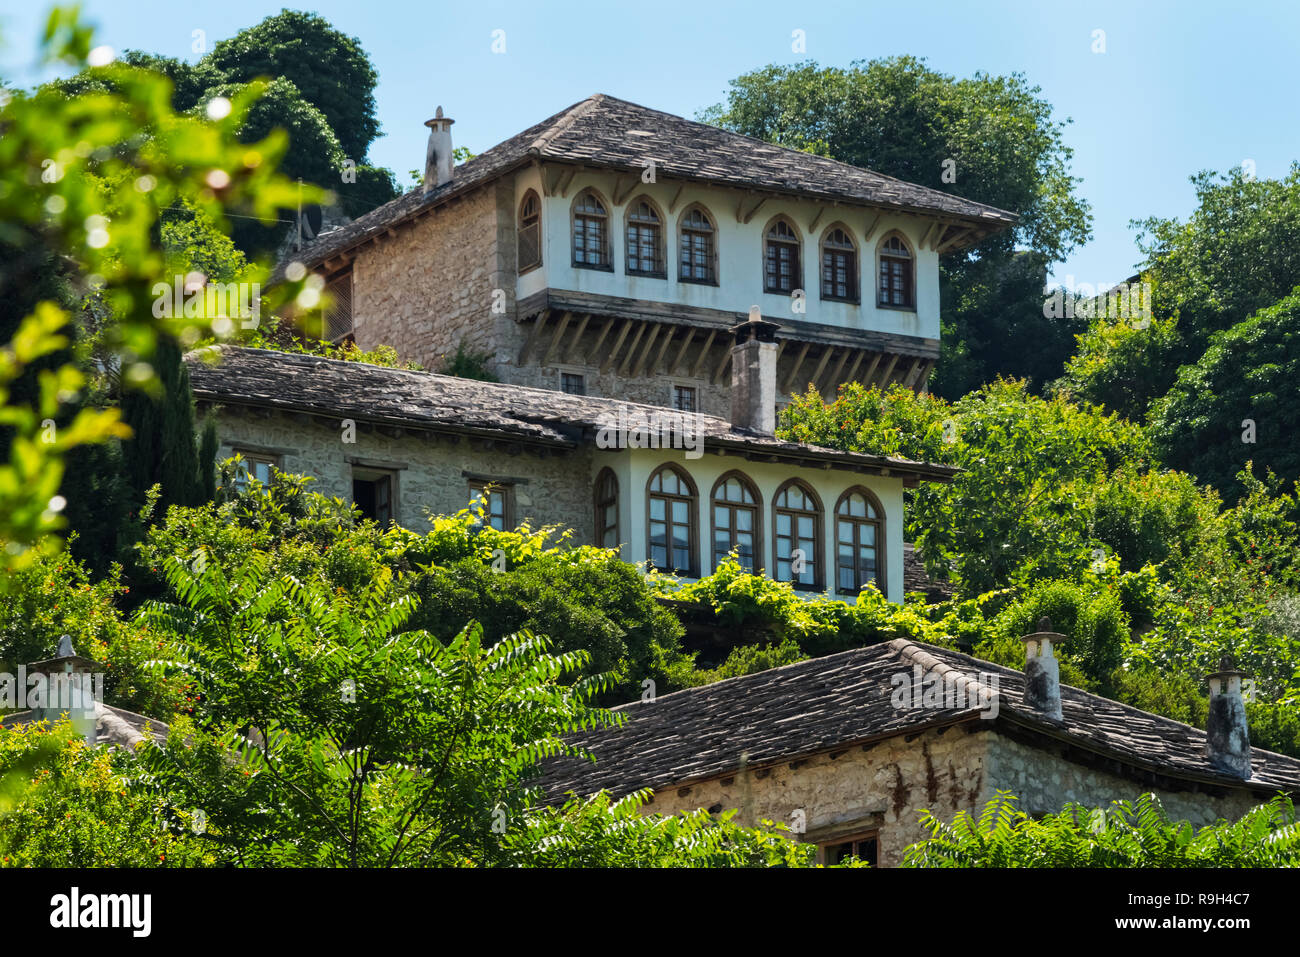 Gavrakanpetanovic house, Pocitelj, Bosnia and Herzegovina - Stock Image